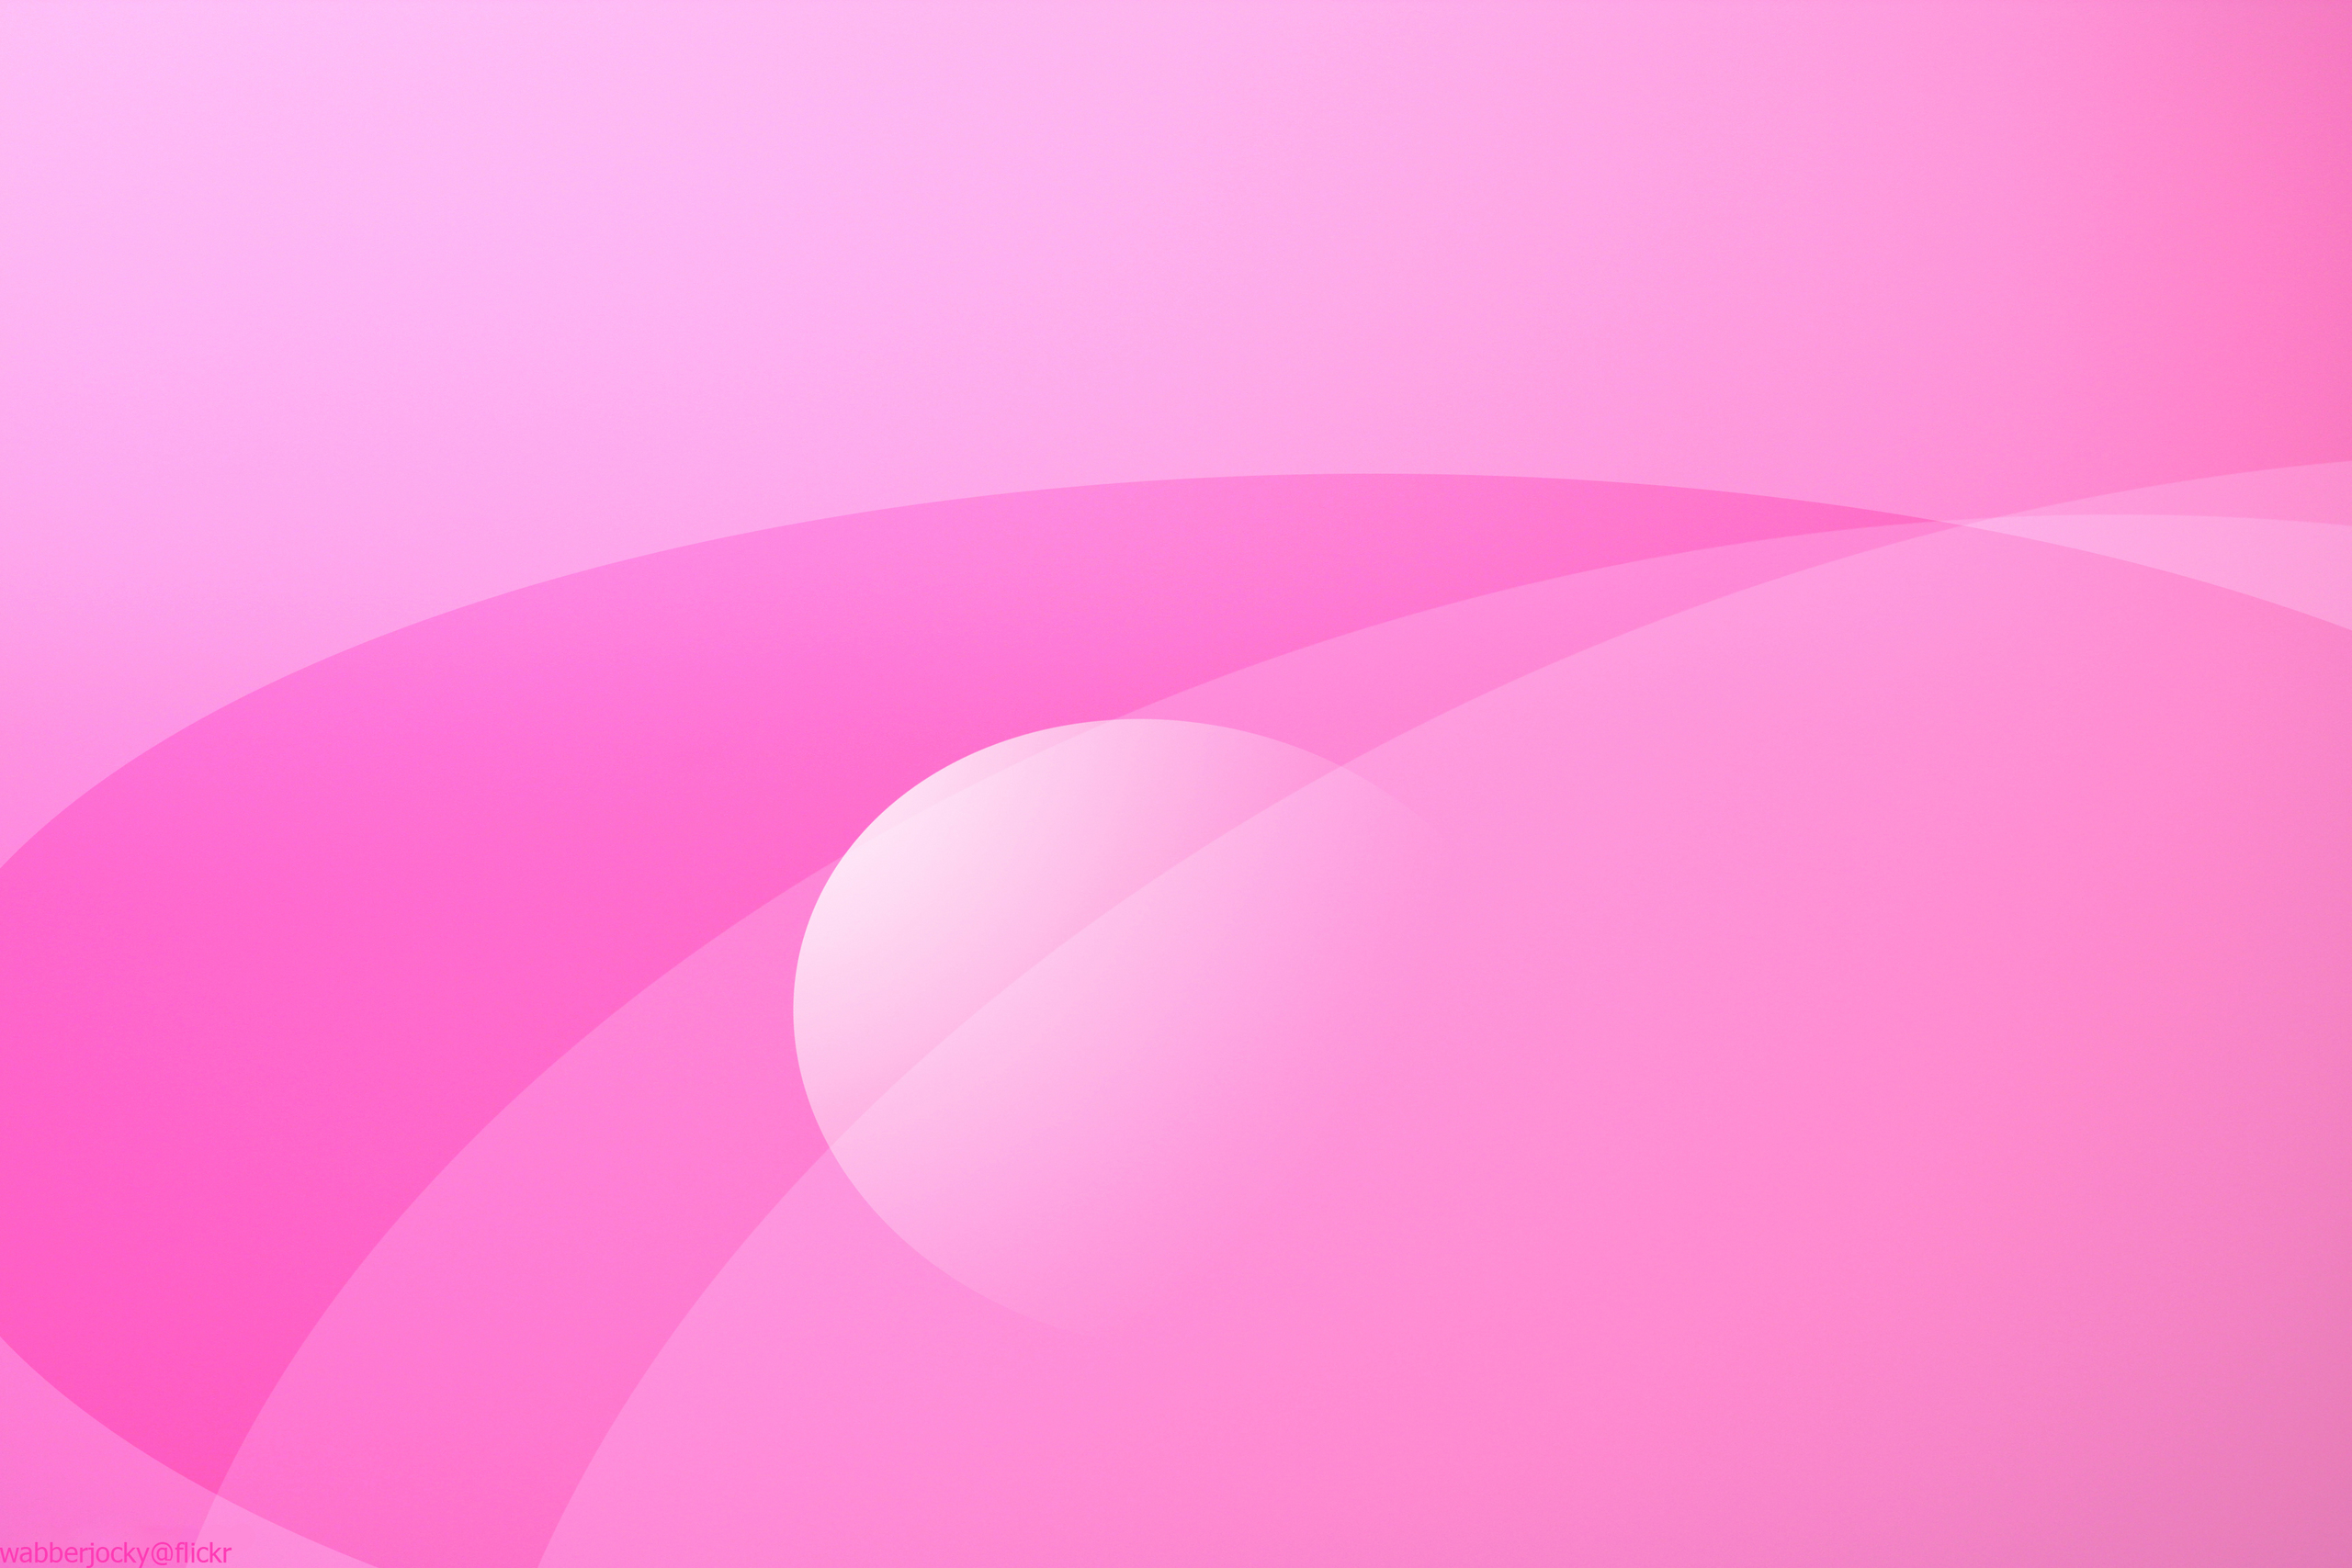 Pink   Pink Color Photo 10579479 2560x1707